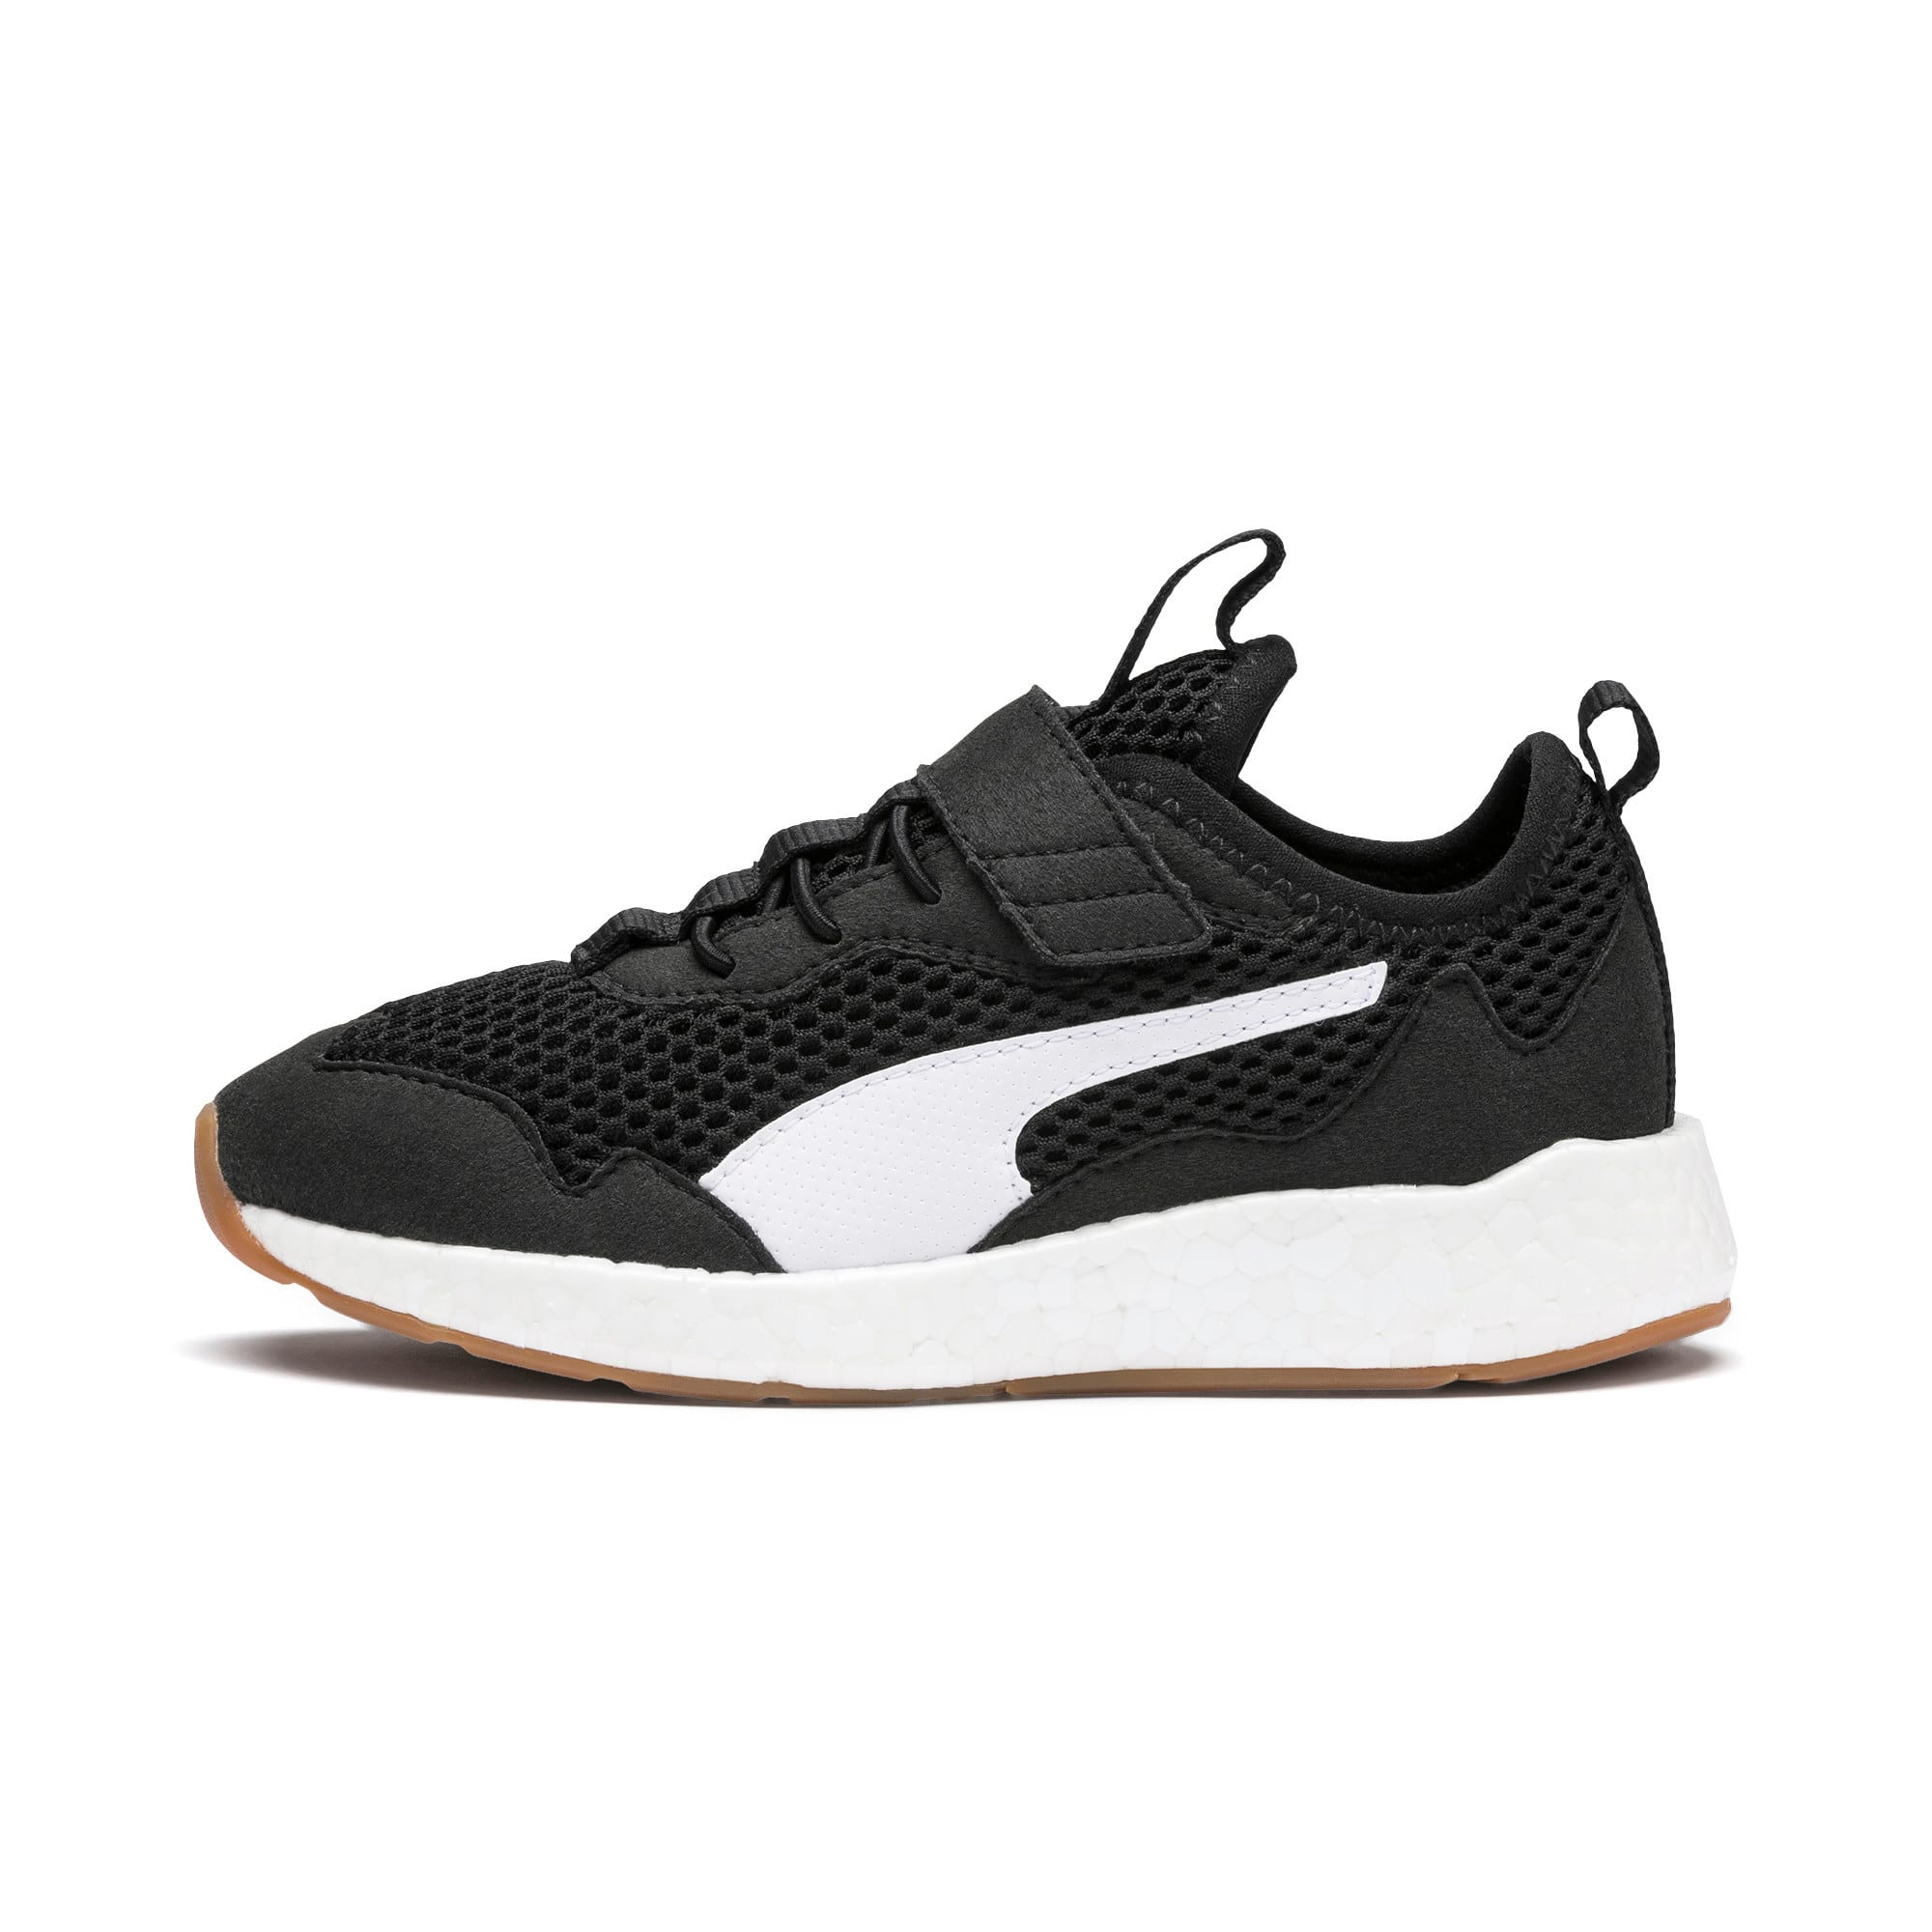 Thumbnail 1 of NRGY Neko Skim AC Kids' Trainers, Puma Black-Puma White, medium